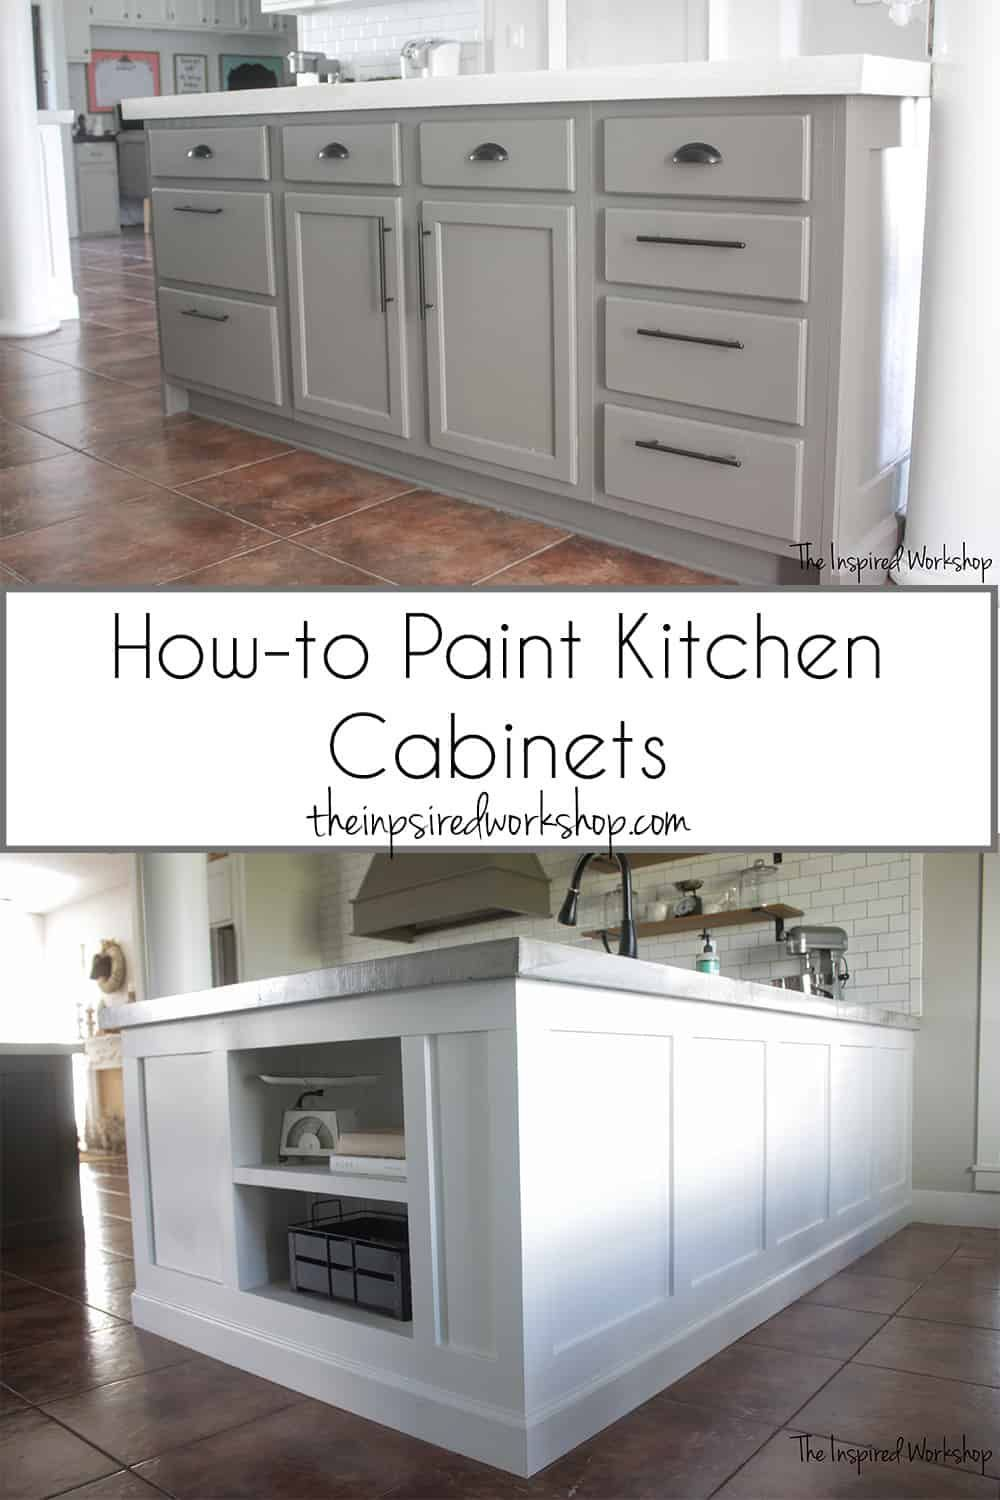 How To Paint Kitchen Cabinets In 2020 Painting Kitchen Cabinets Kitchen Cabinets Kitchen Paint